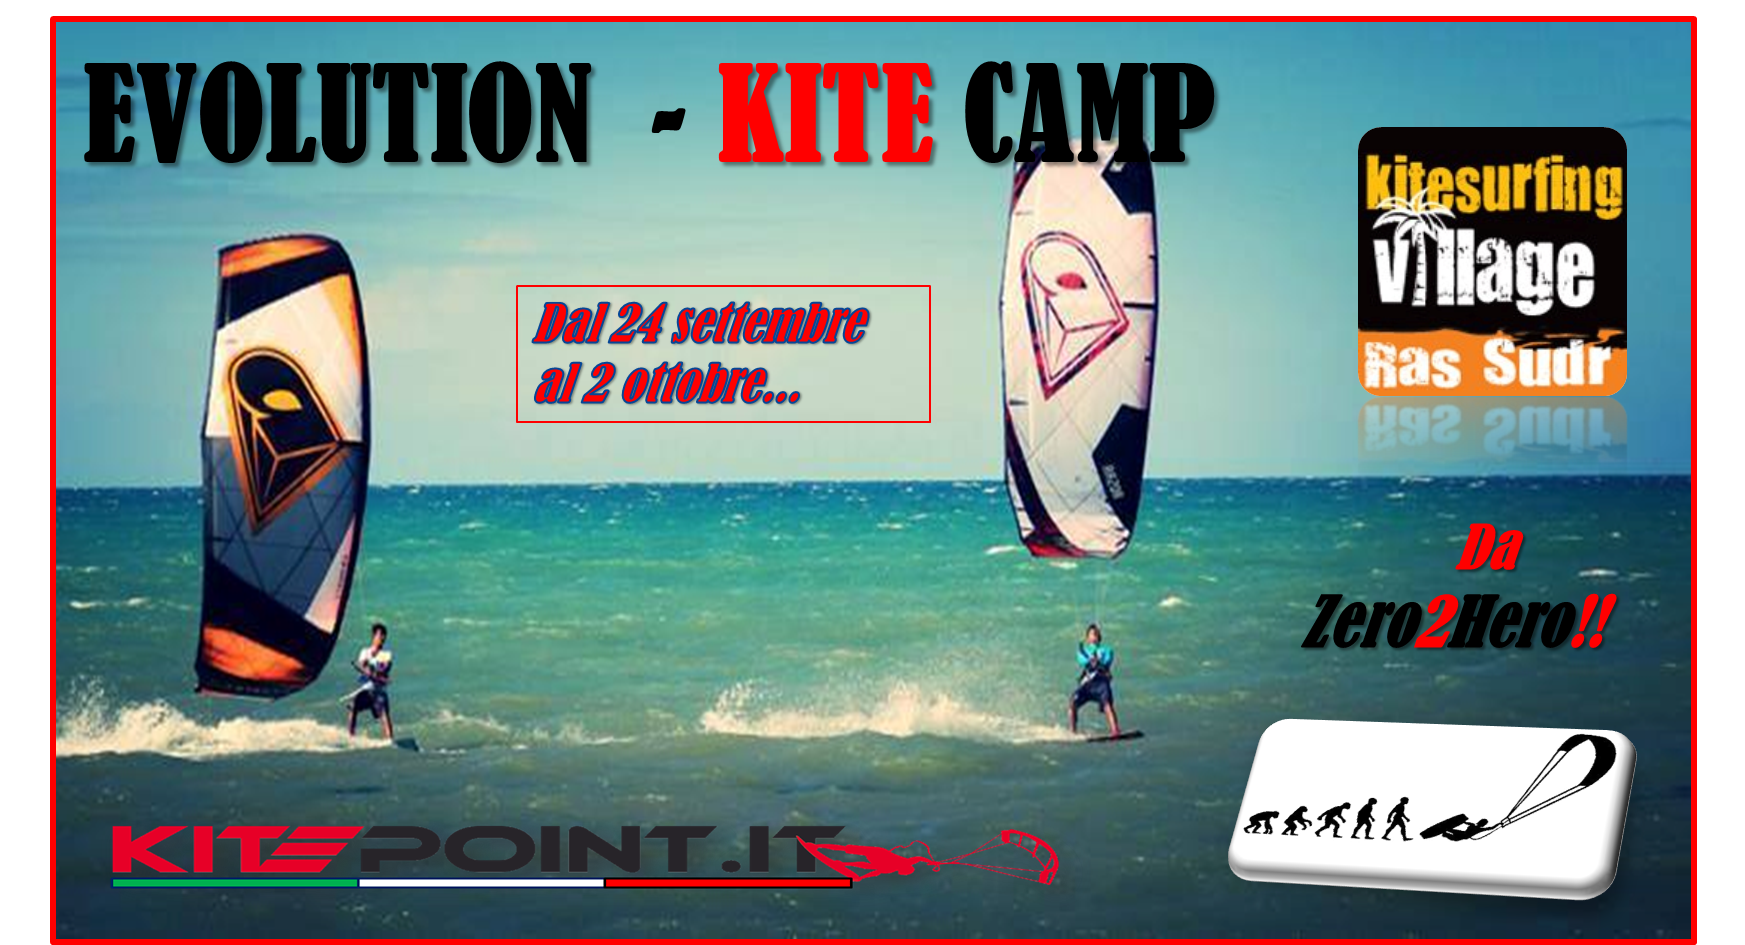 Evolution Kite Camp